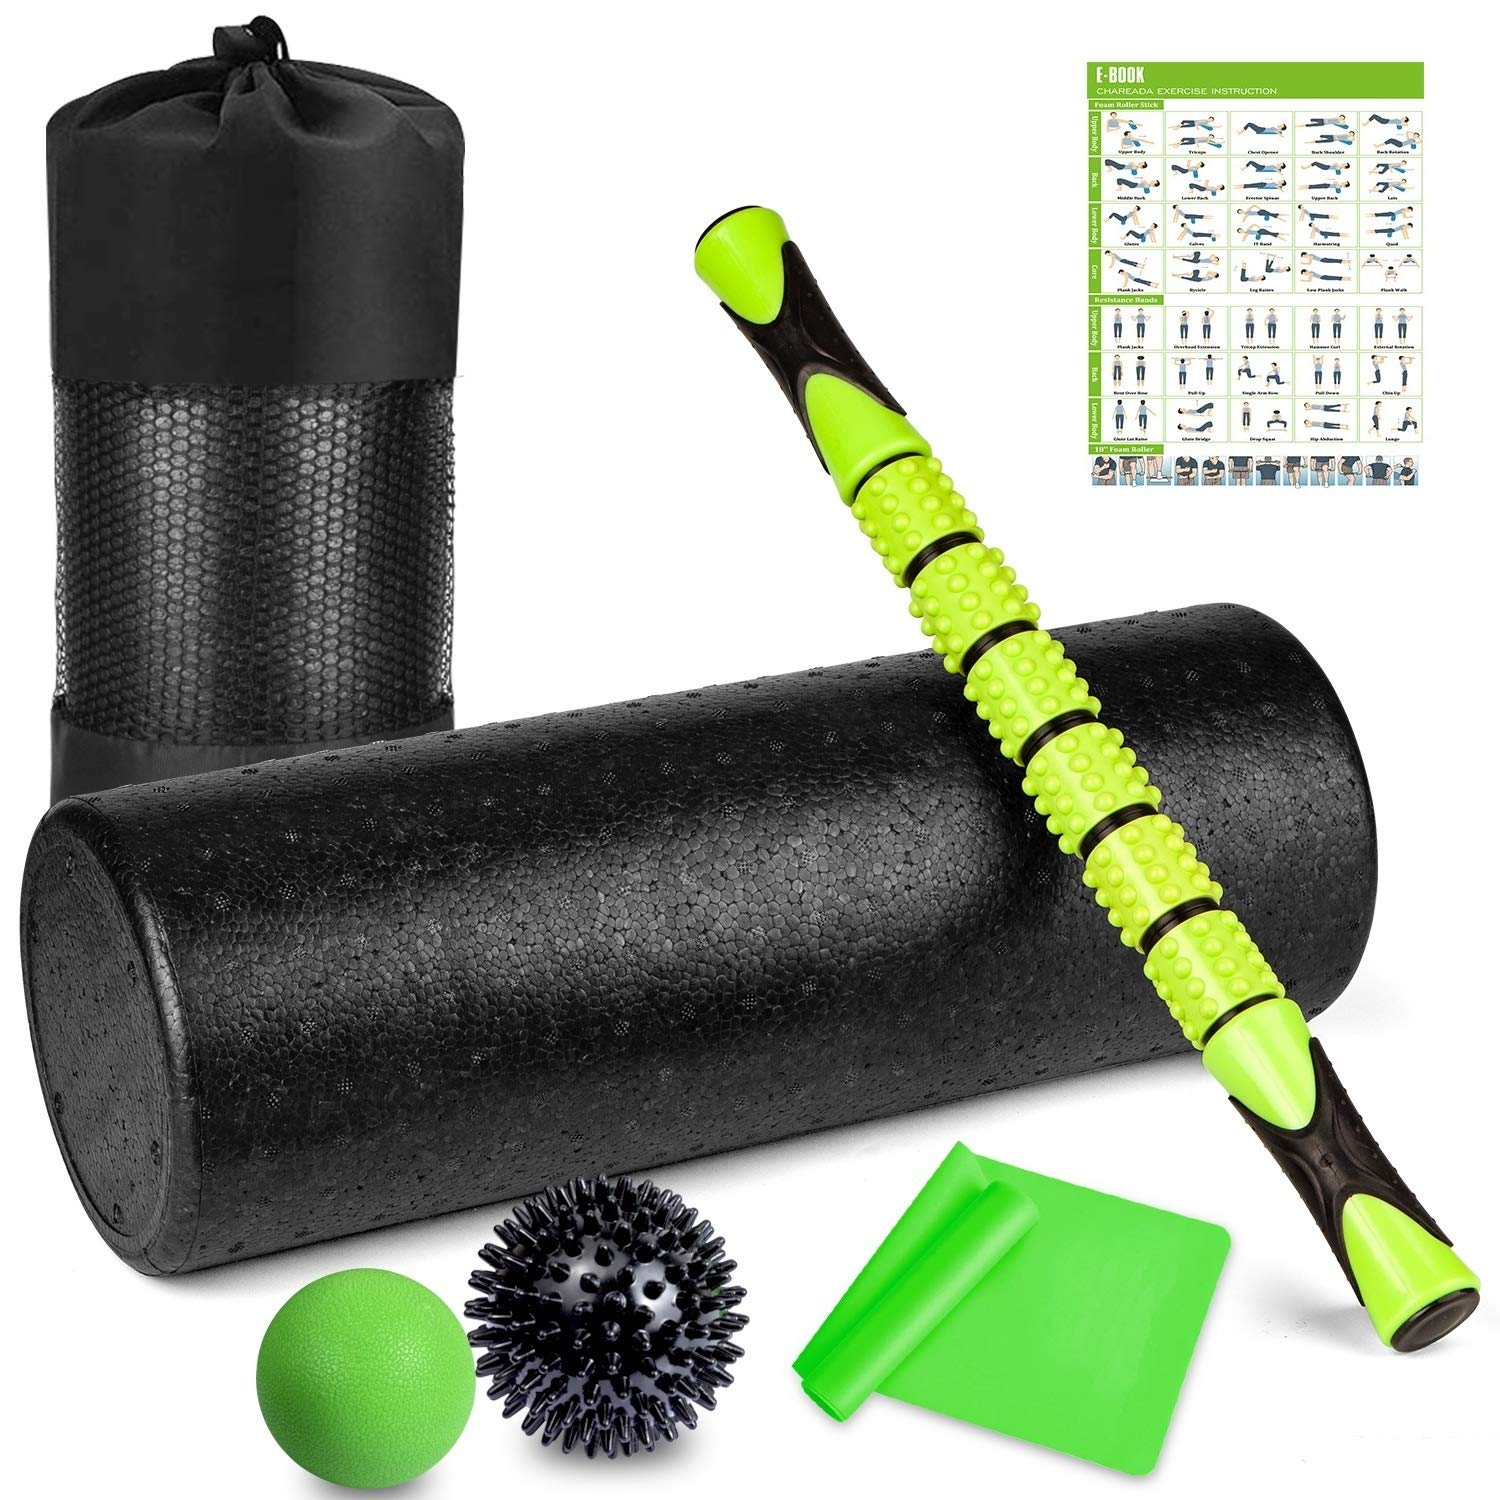 6 in 1 Premium Massage Foam Roller Kit 18″ Large Foam Roller with Muscle Roller Stick 2 Massage Balls & 1 Resistance Band for Physical Therapy Injury Prevention Stretching Yoga & Trigger Point